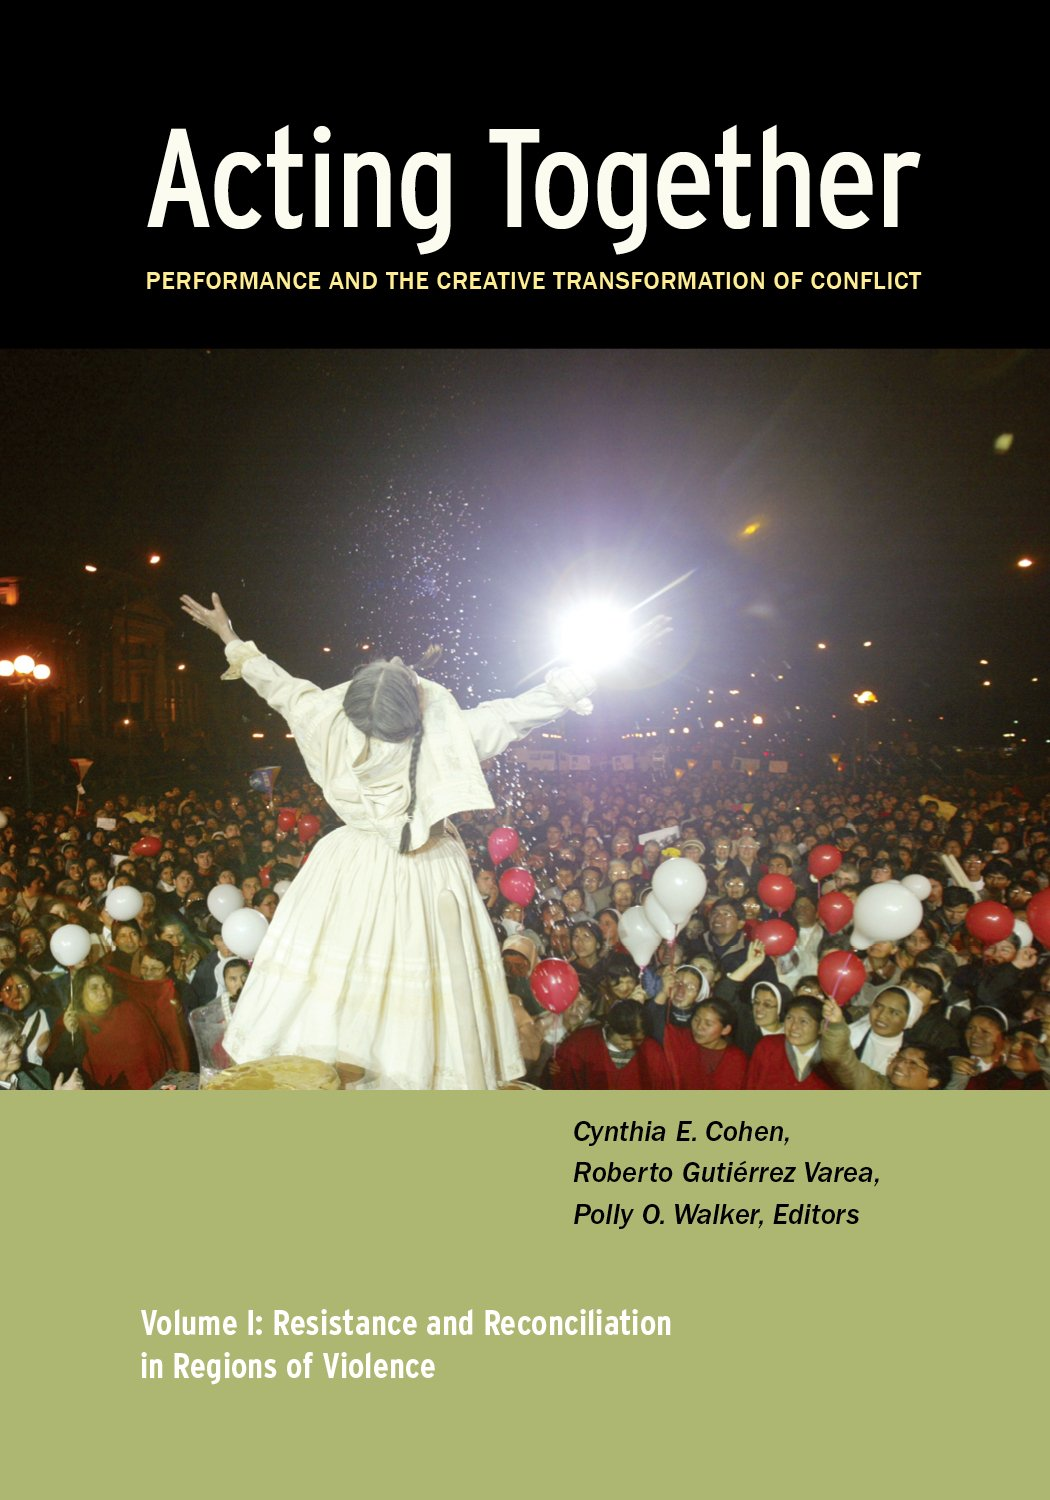 Download Acting Together I: Performance and the Creative Transformation of Conflict: Resistance and Reconciliation in Regions of Violence pdf epub